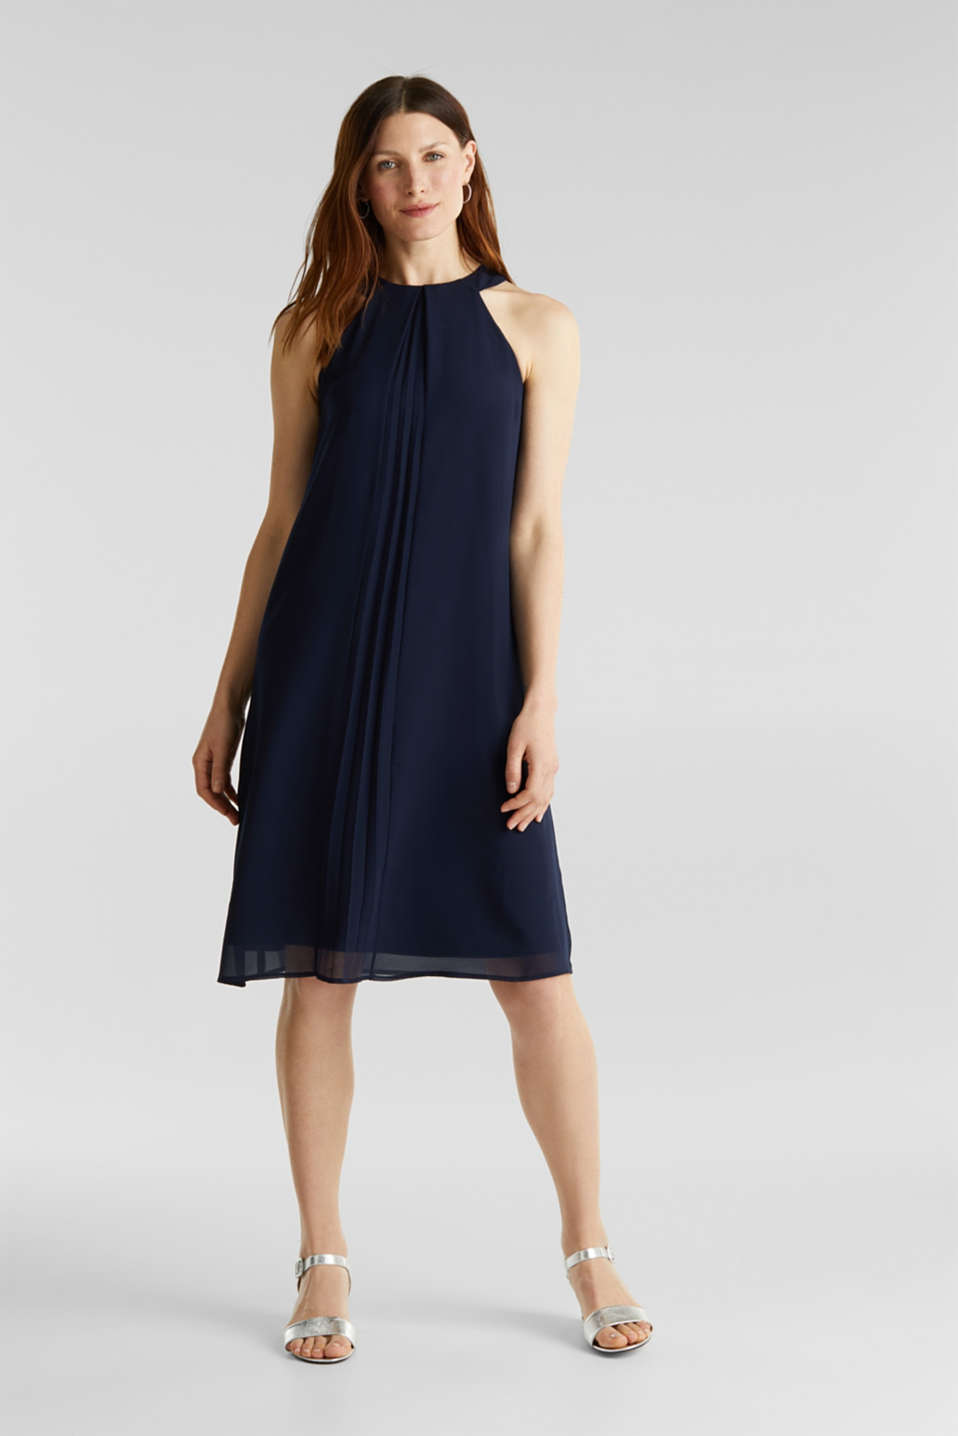 Esprit - Recycled: crêpe dress with a belt